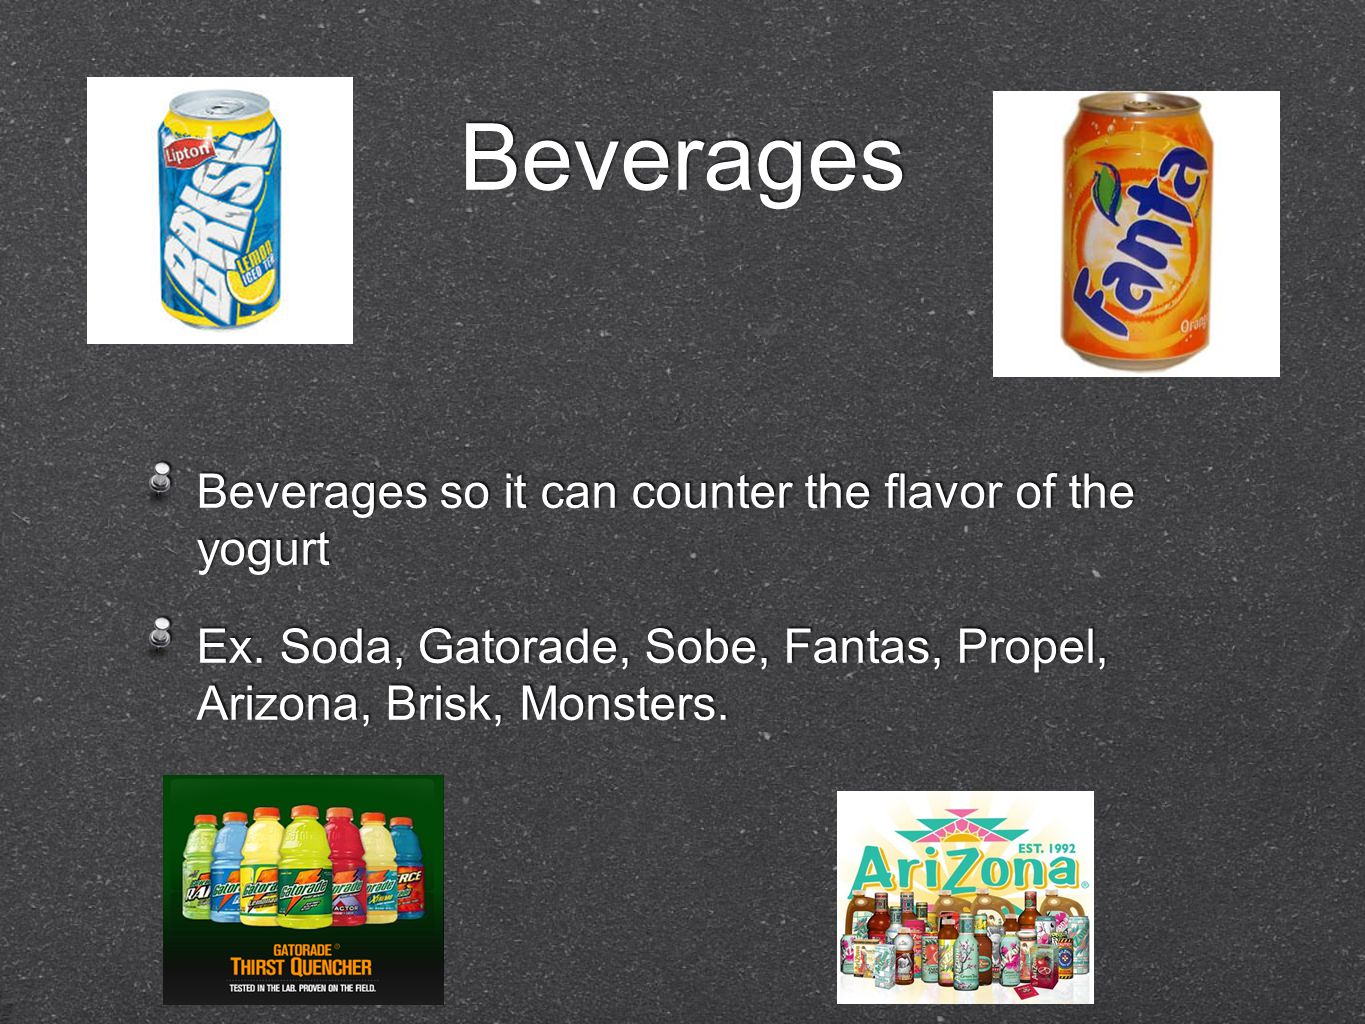 Beverages Beverages so it can counter the flavor of the yogurt Ex. Soda, Gatorade, Sobe, Fantas, Propel, Arizona, Brisk, Monsters. Beverages so it can